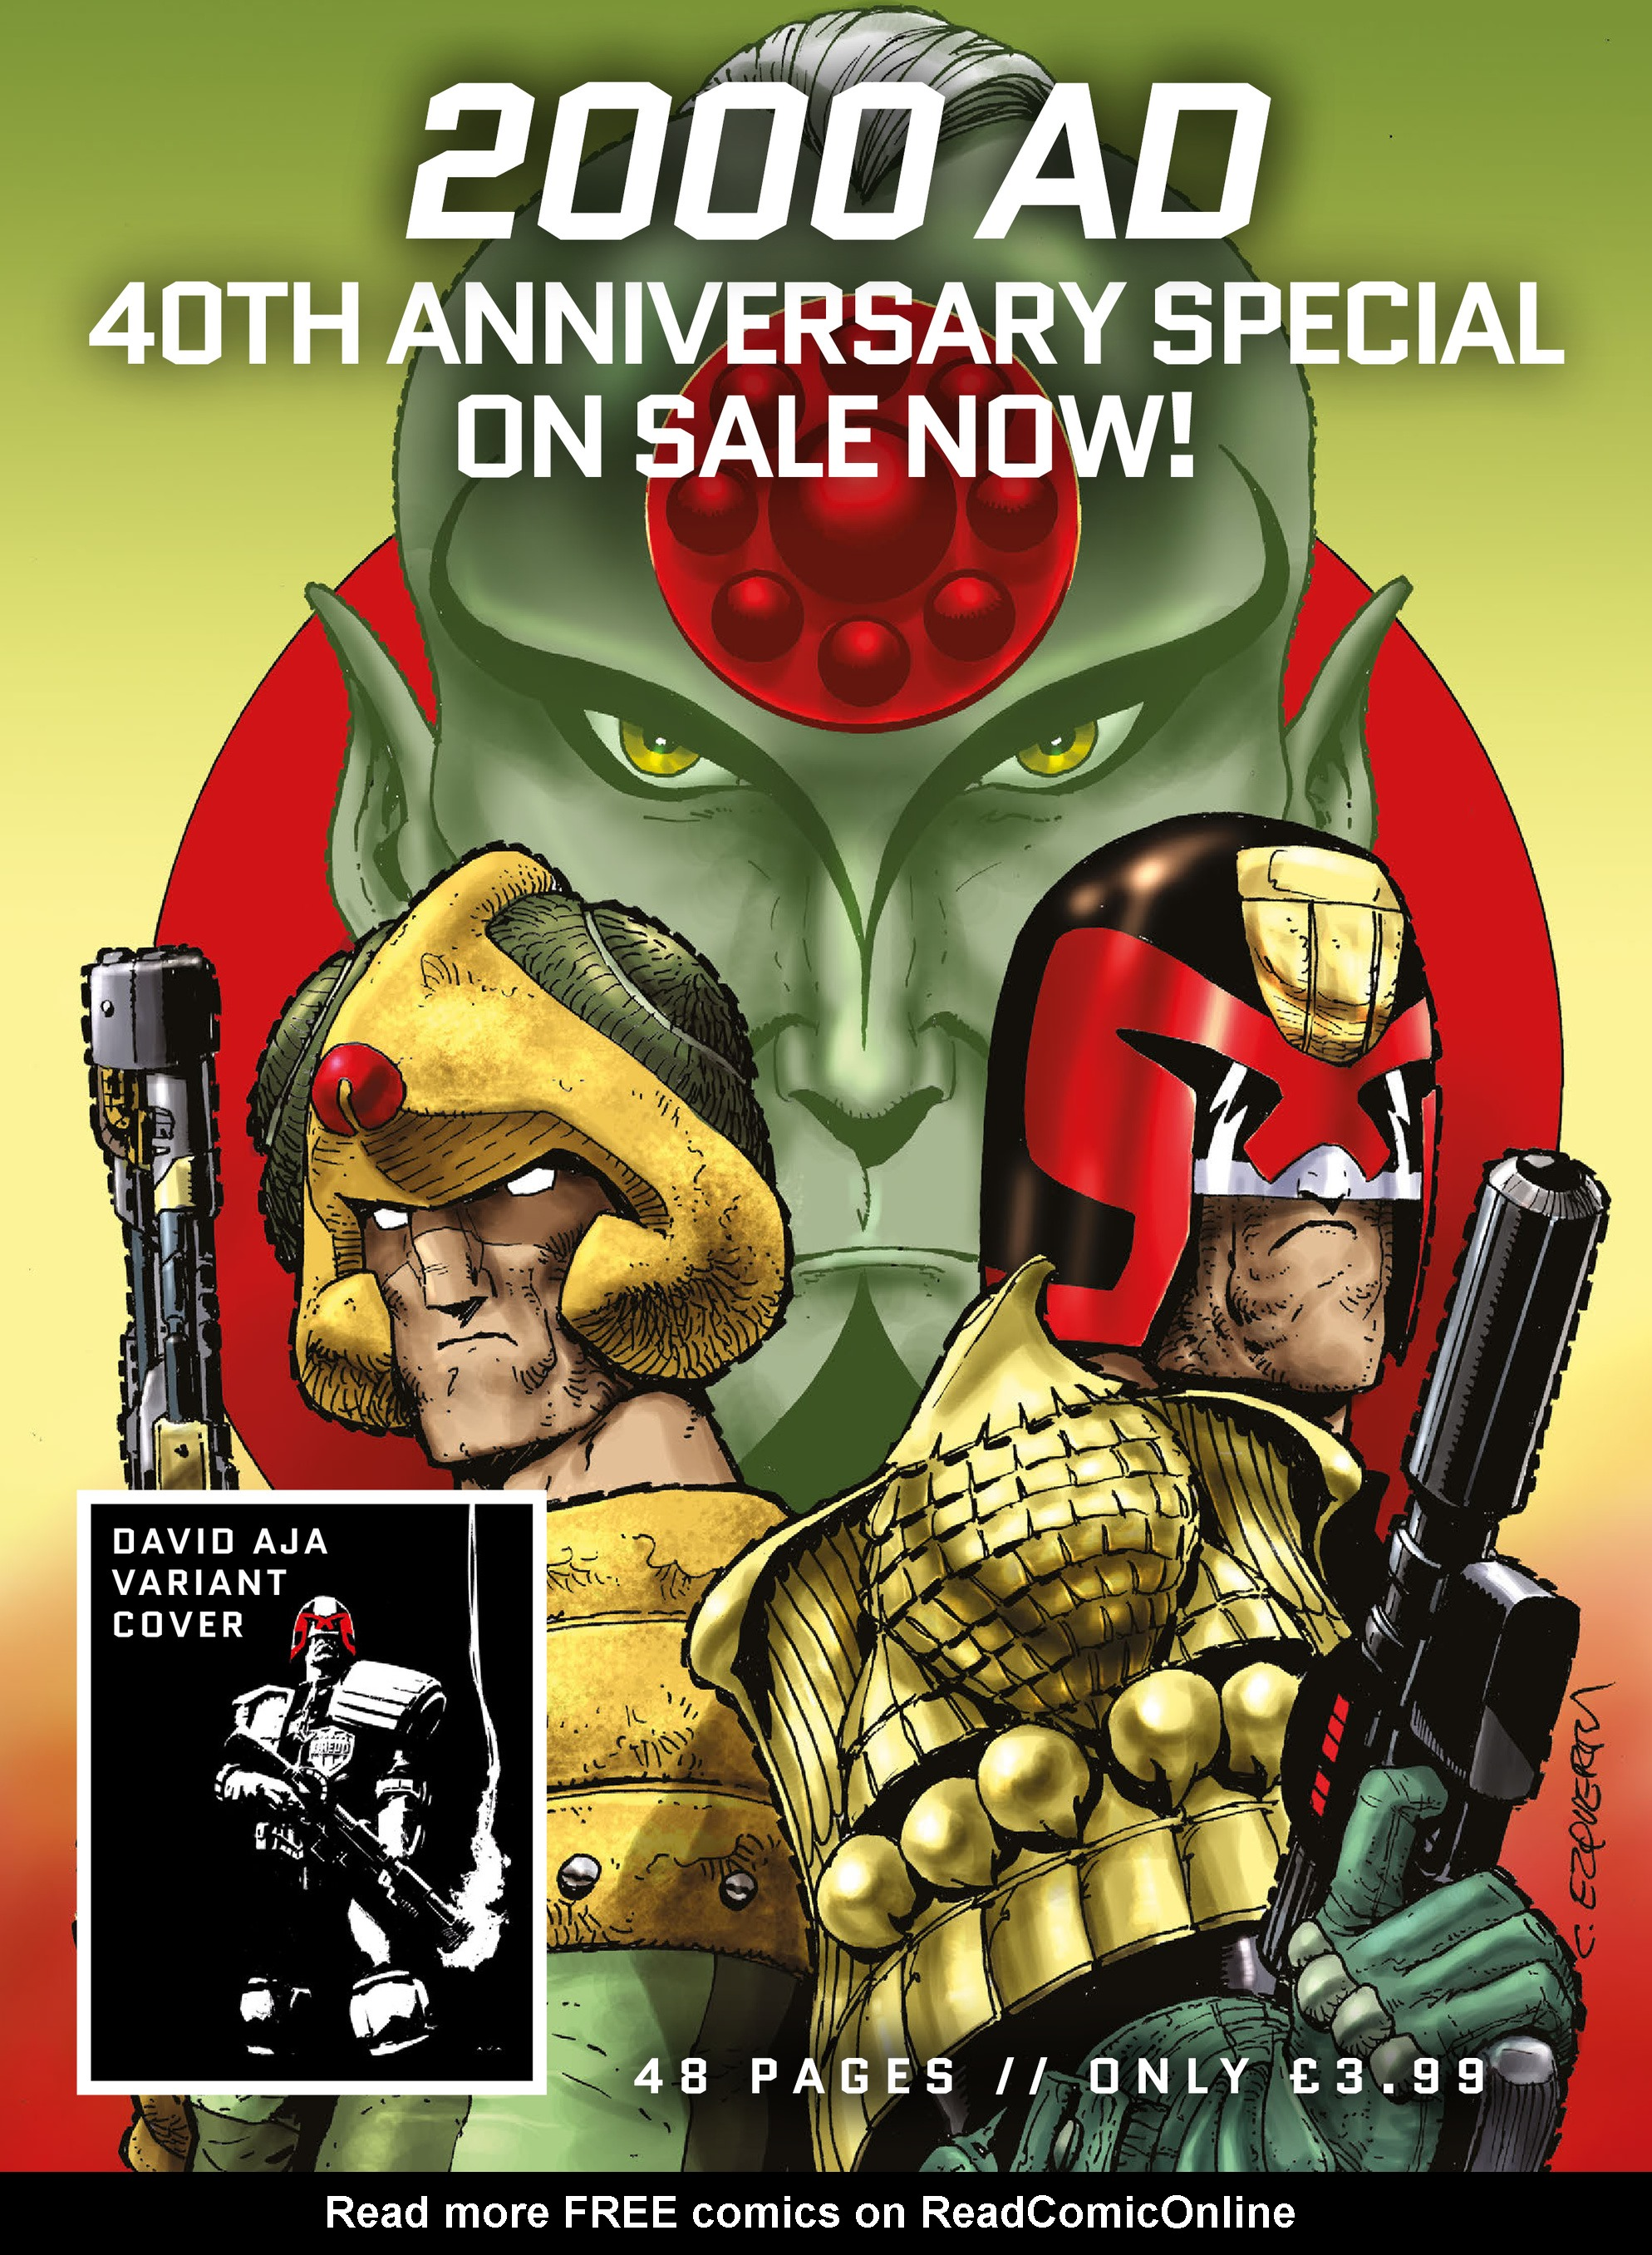 Read online 2000 AD comic -  Issue #2020 - 9